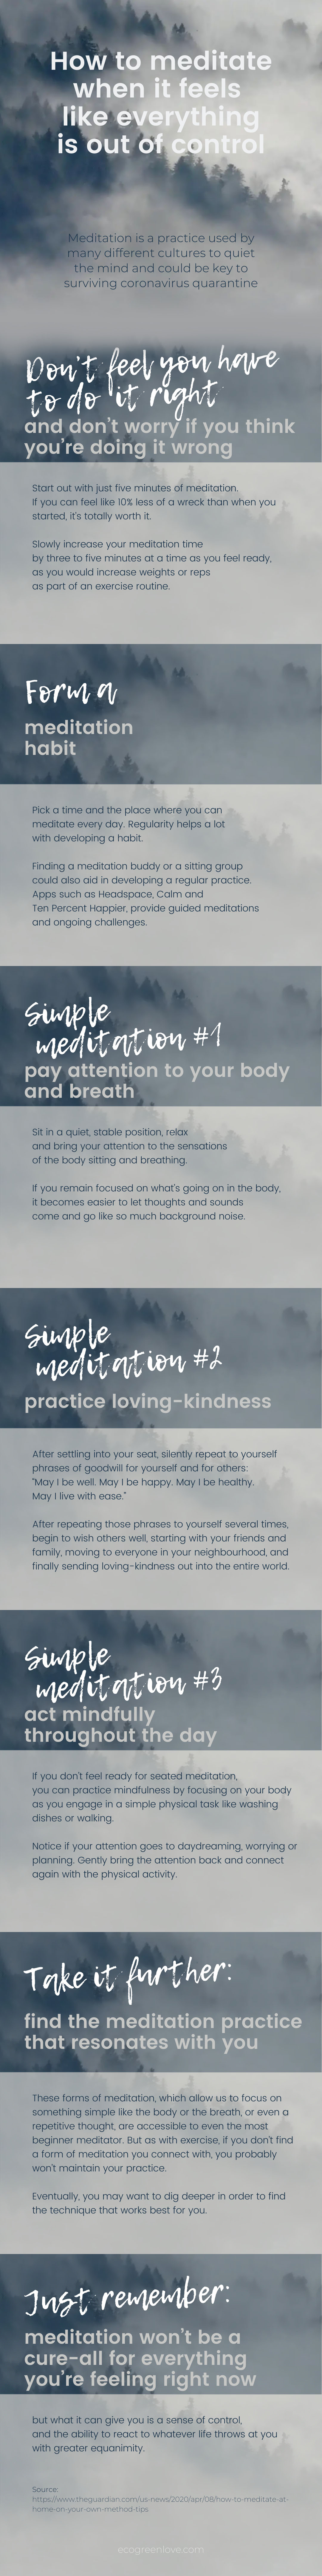 How to meditate when it feels like everything is out of control [Visual]   ecogreenlove